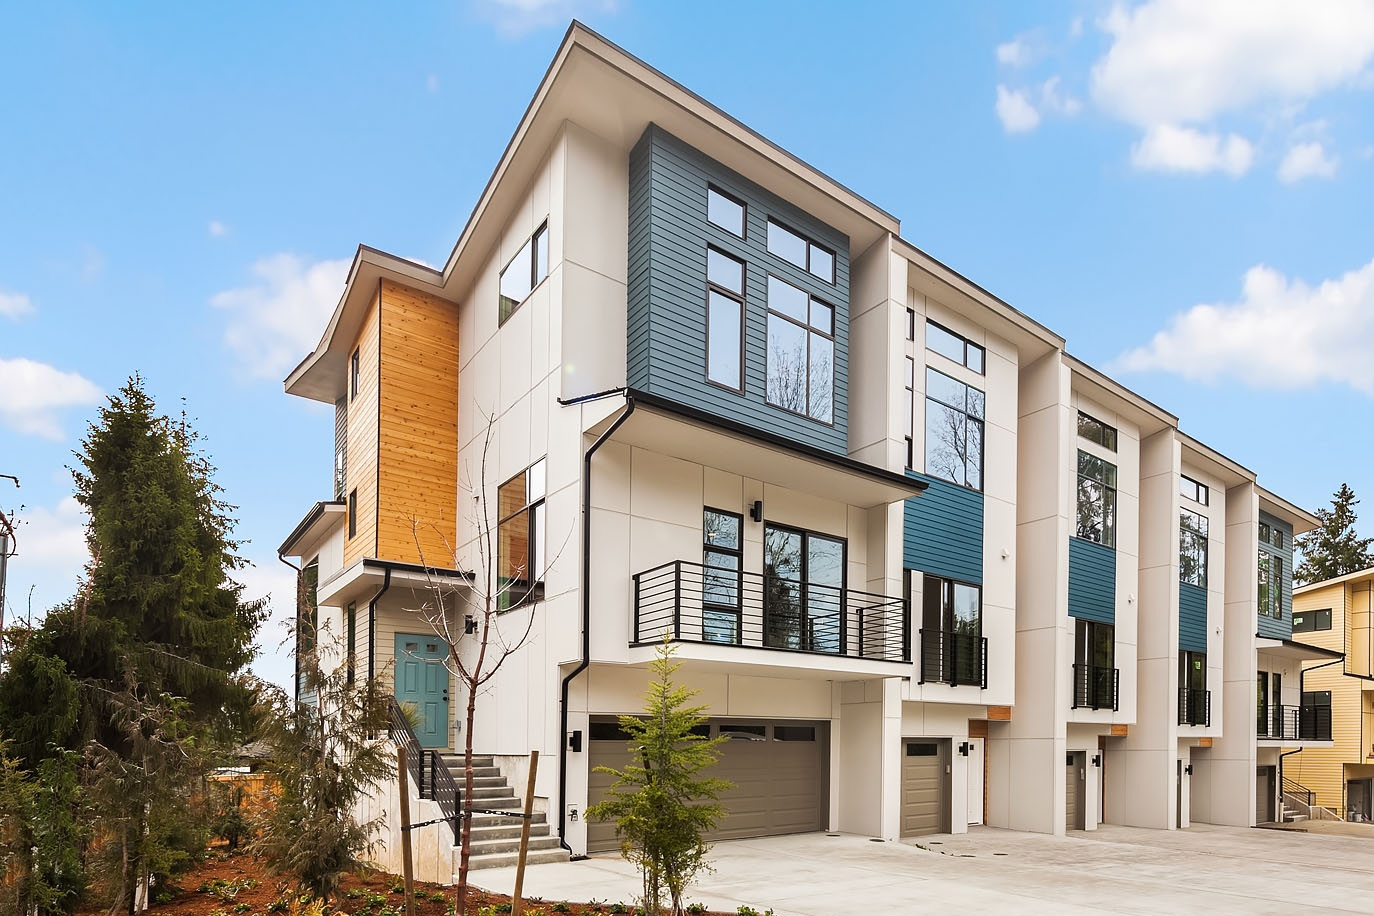 A collection of urban townhomes NOW SELLING in Redmond.